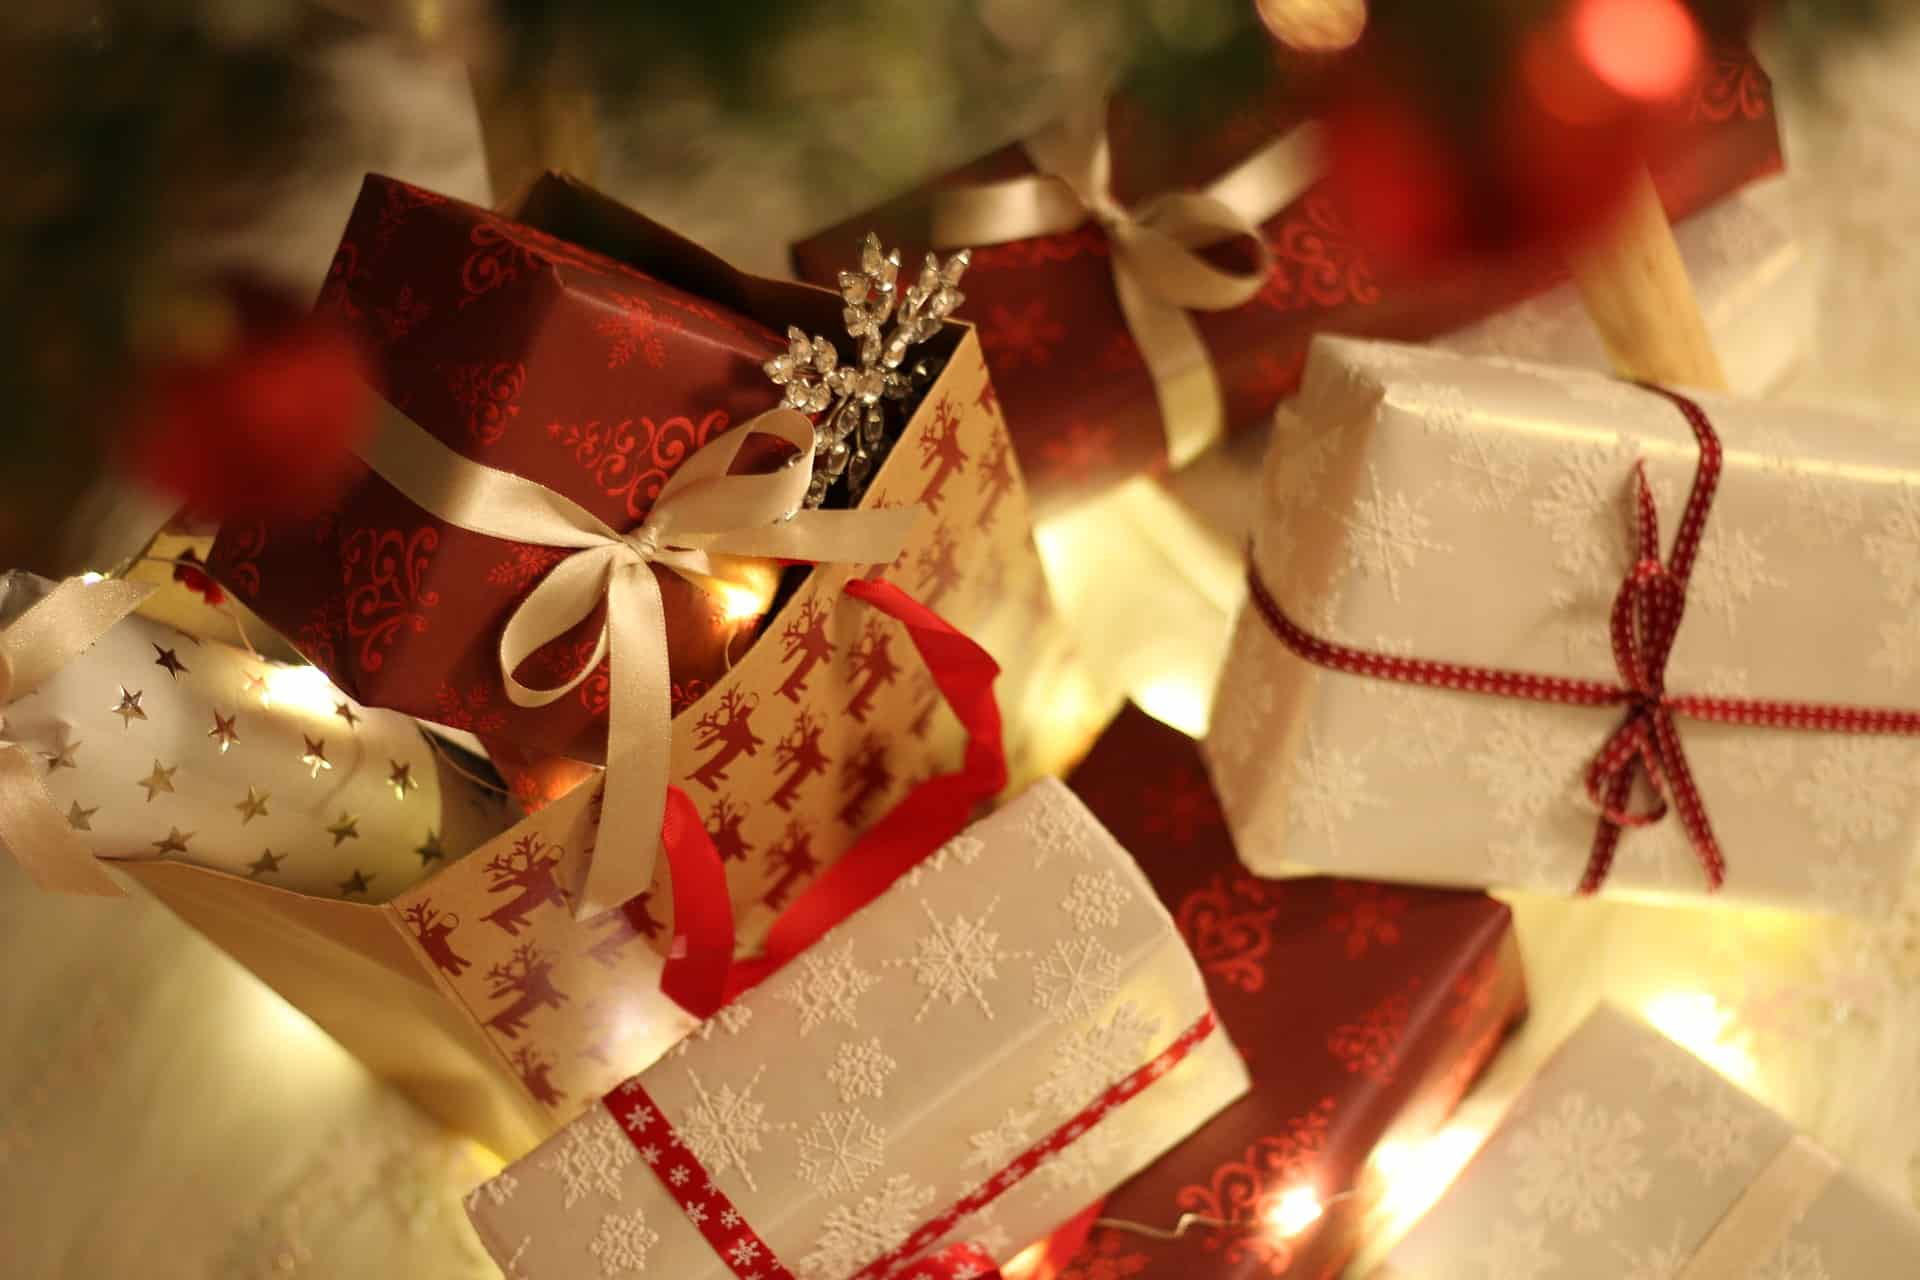 Find the right gift - Wrapped Christmas gifts - Linda Ursin ...